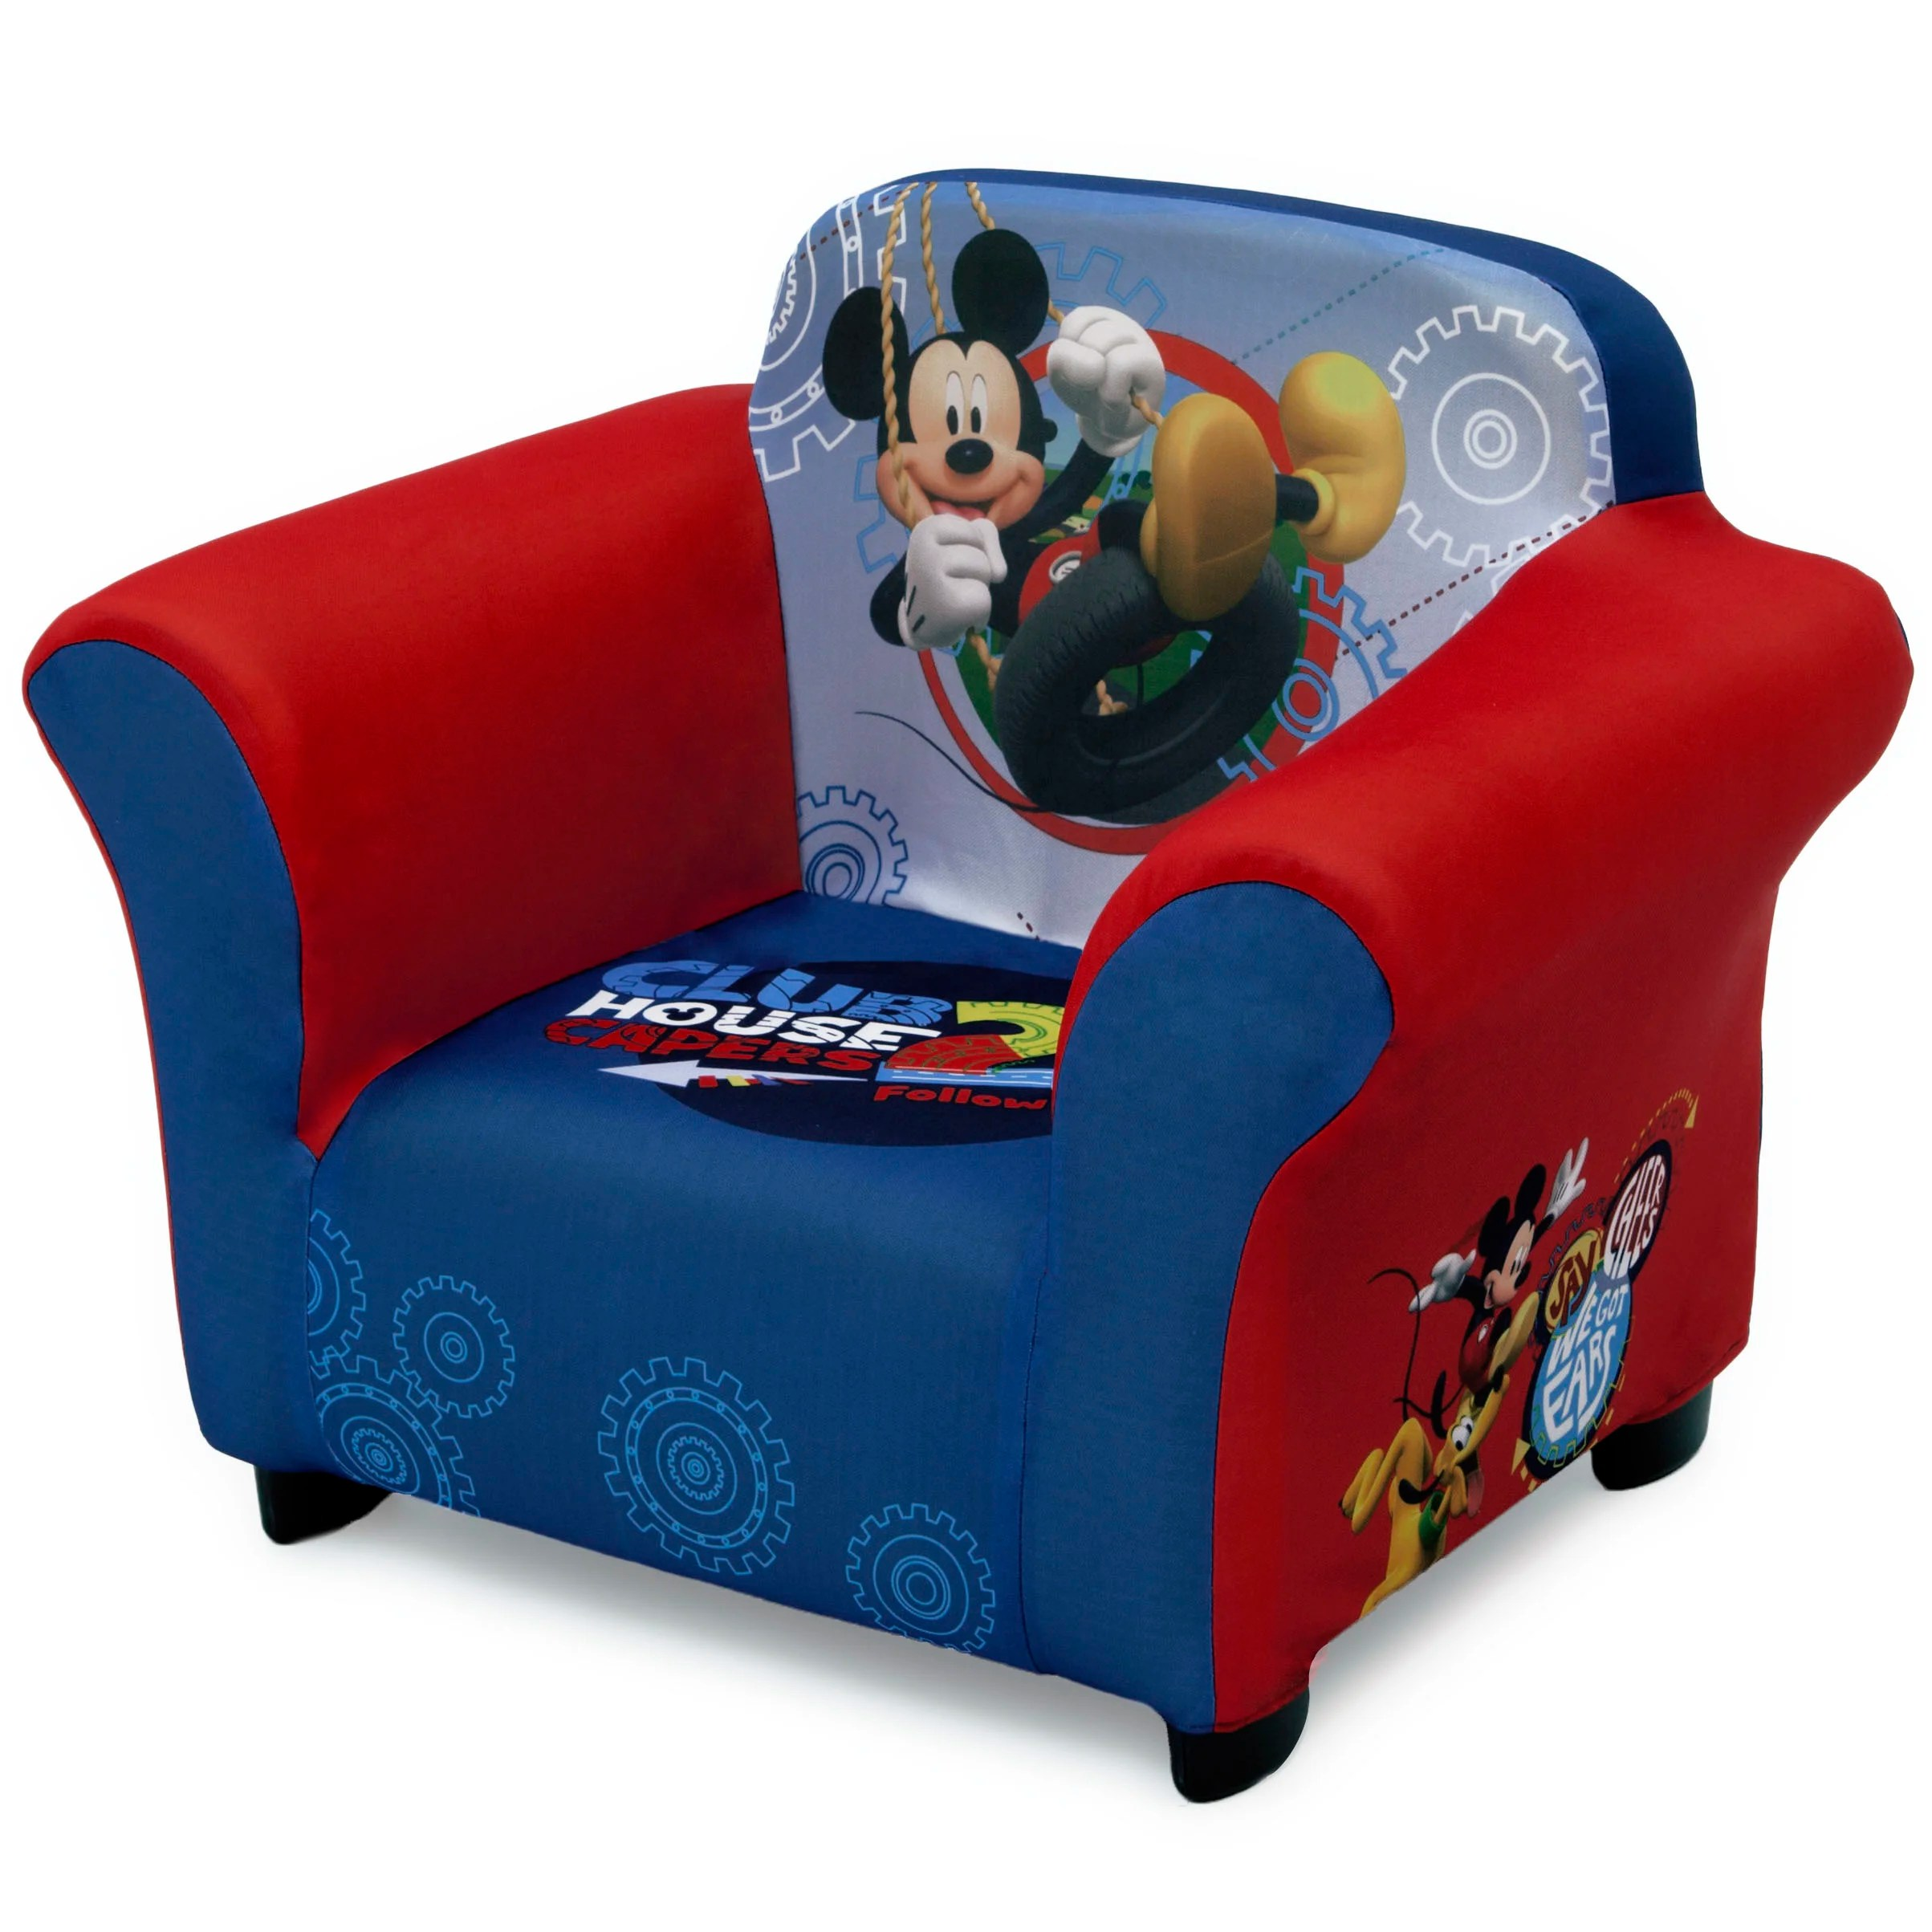 minnie mouse upholstered chair canada design basics disney blogs workanyware co uk delta children mickey kids club s